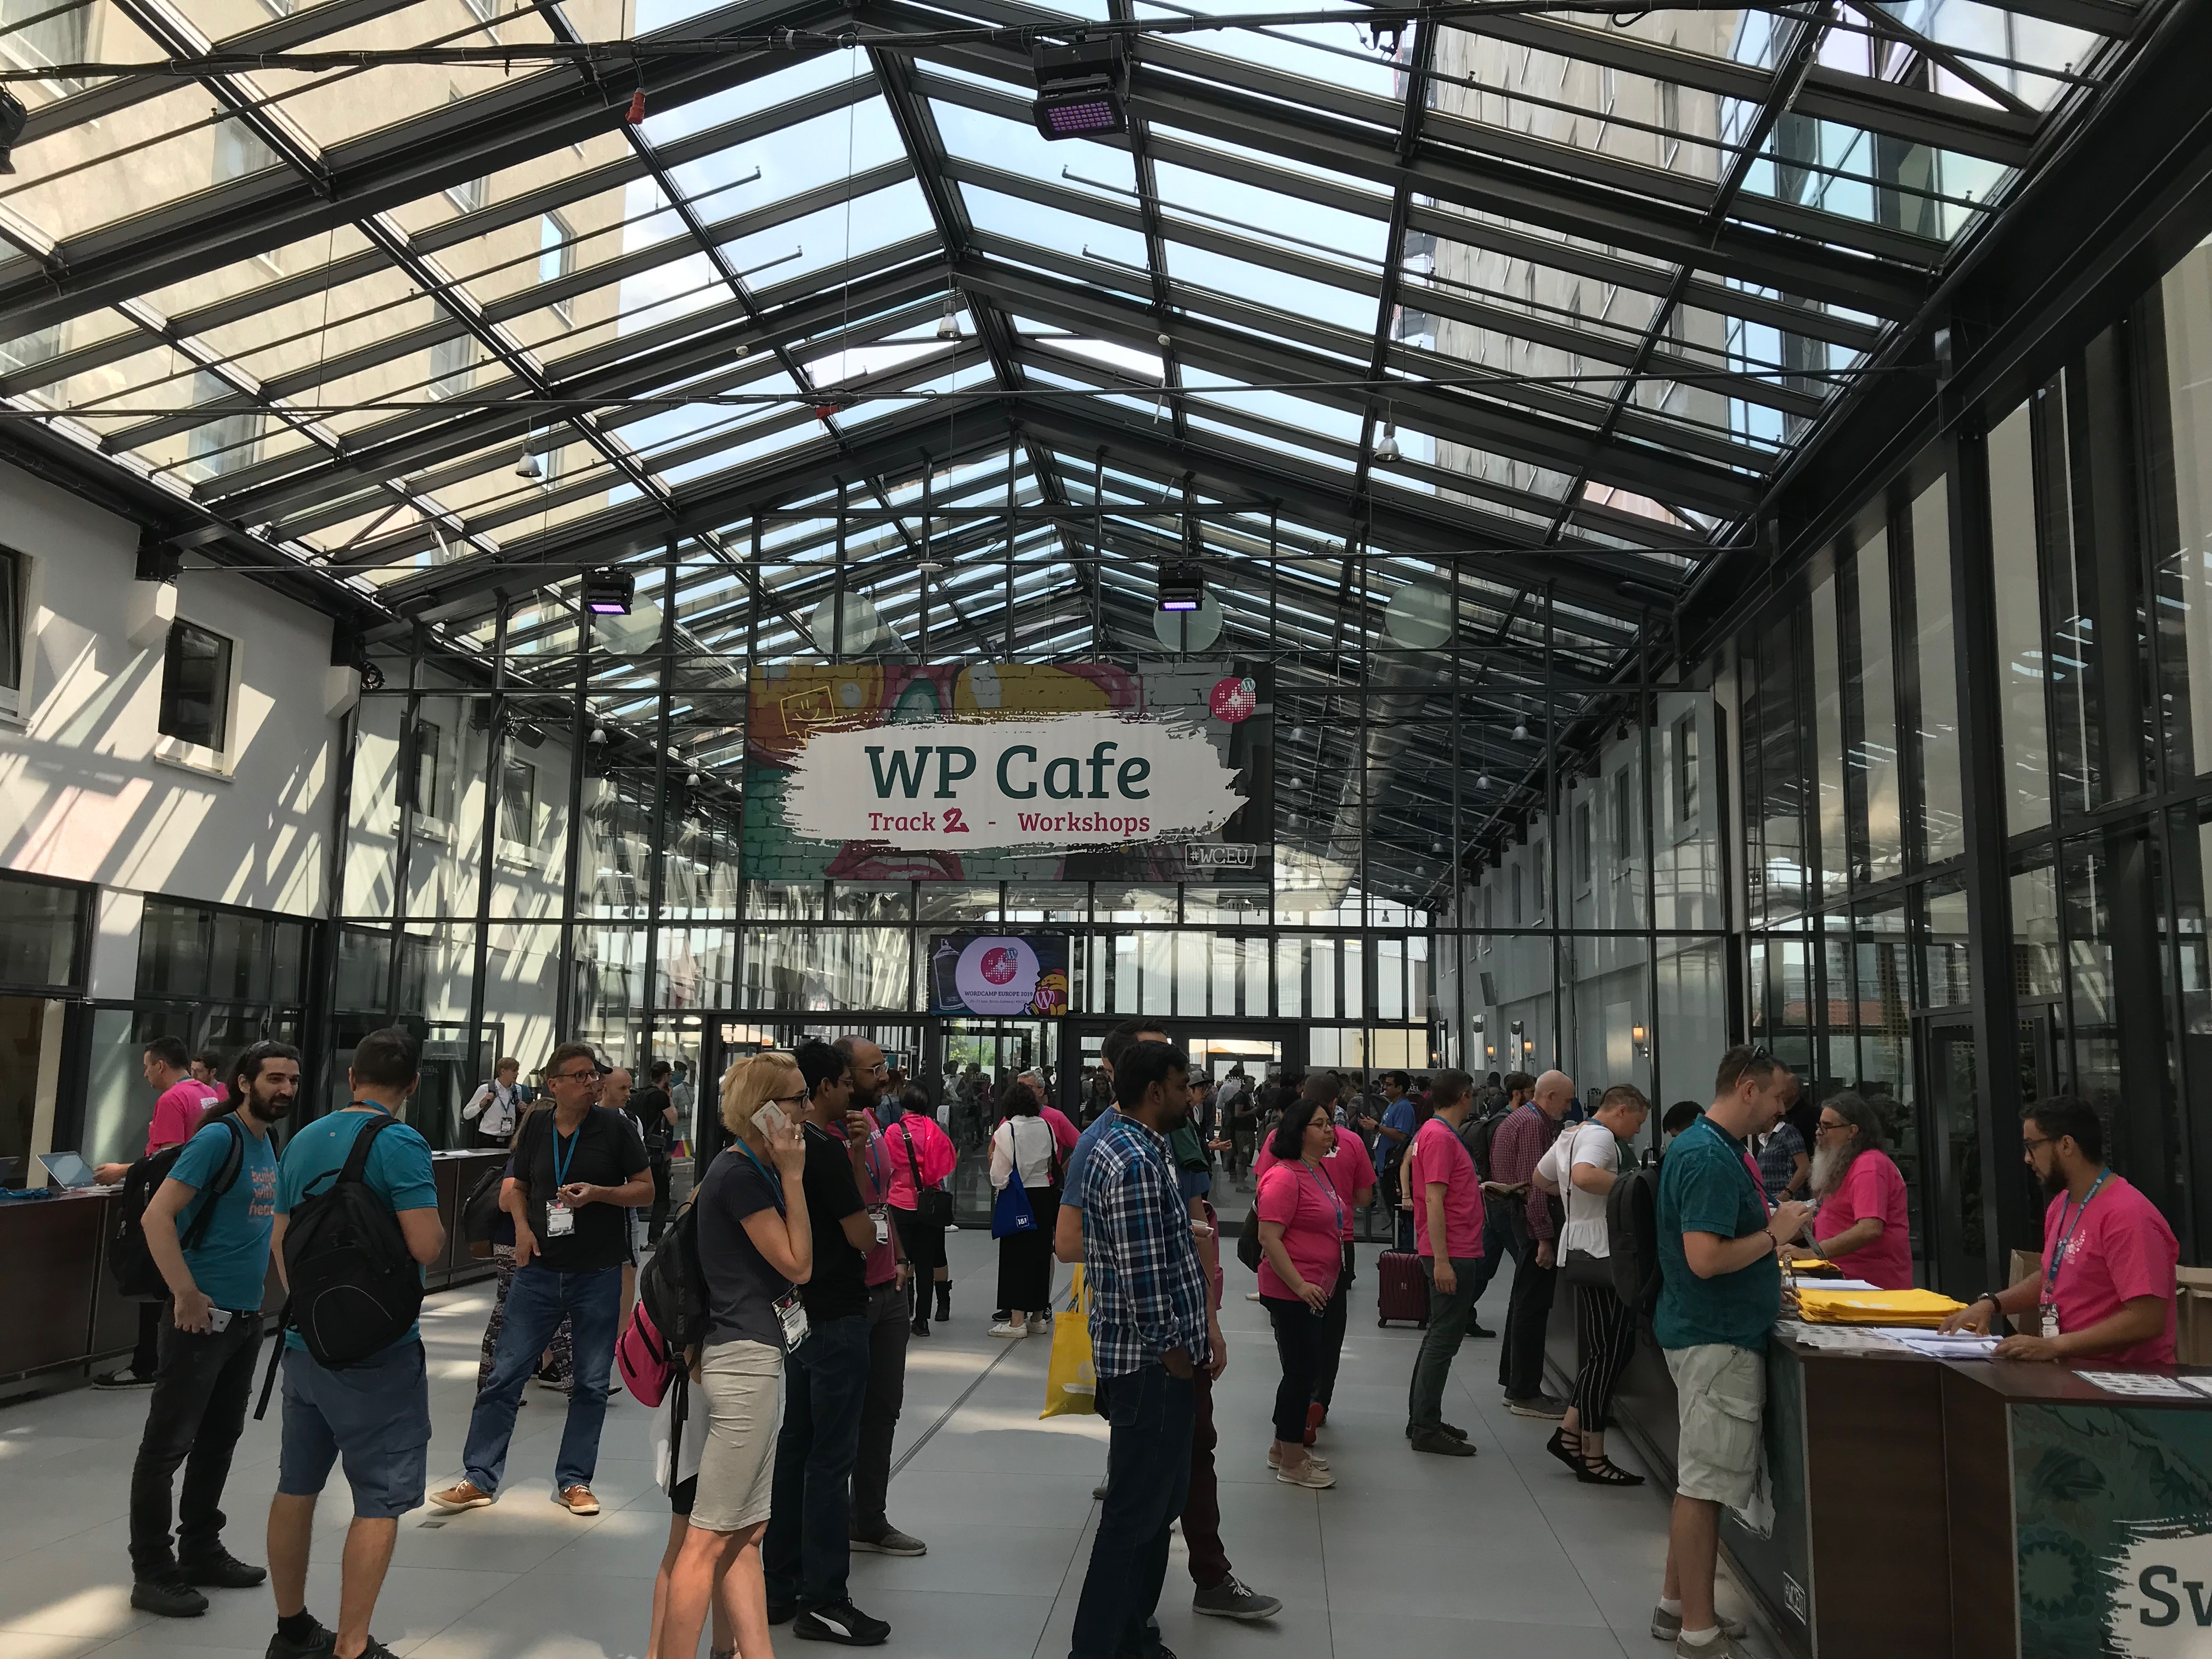 People attending the WordCamp 2019.